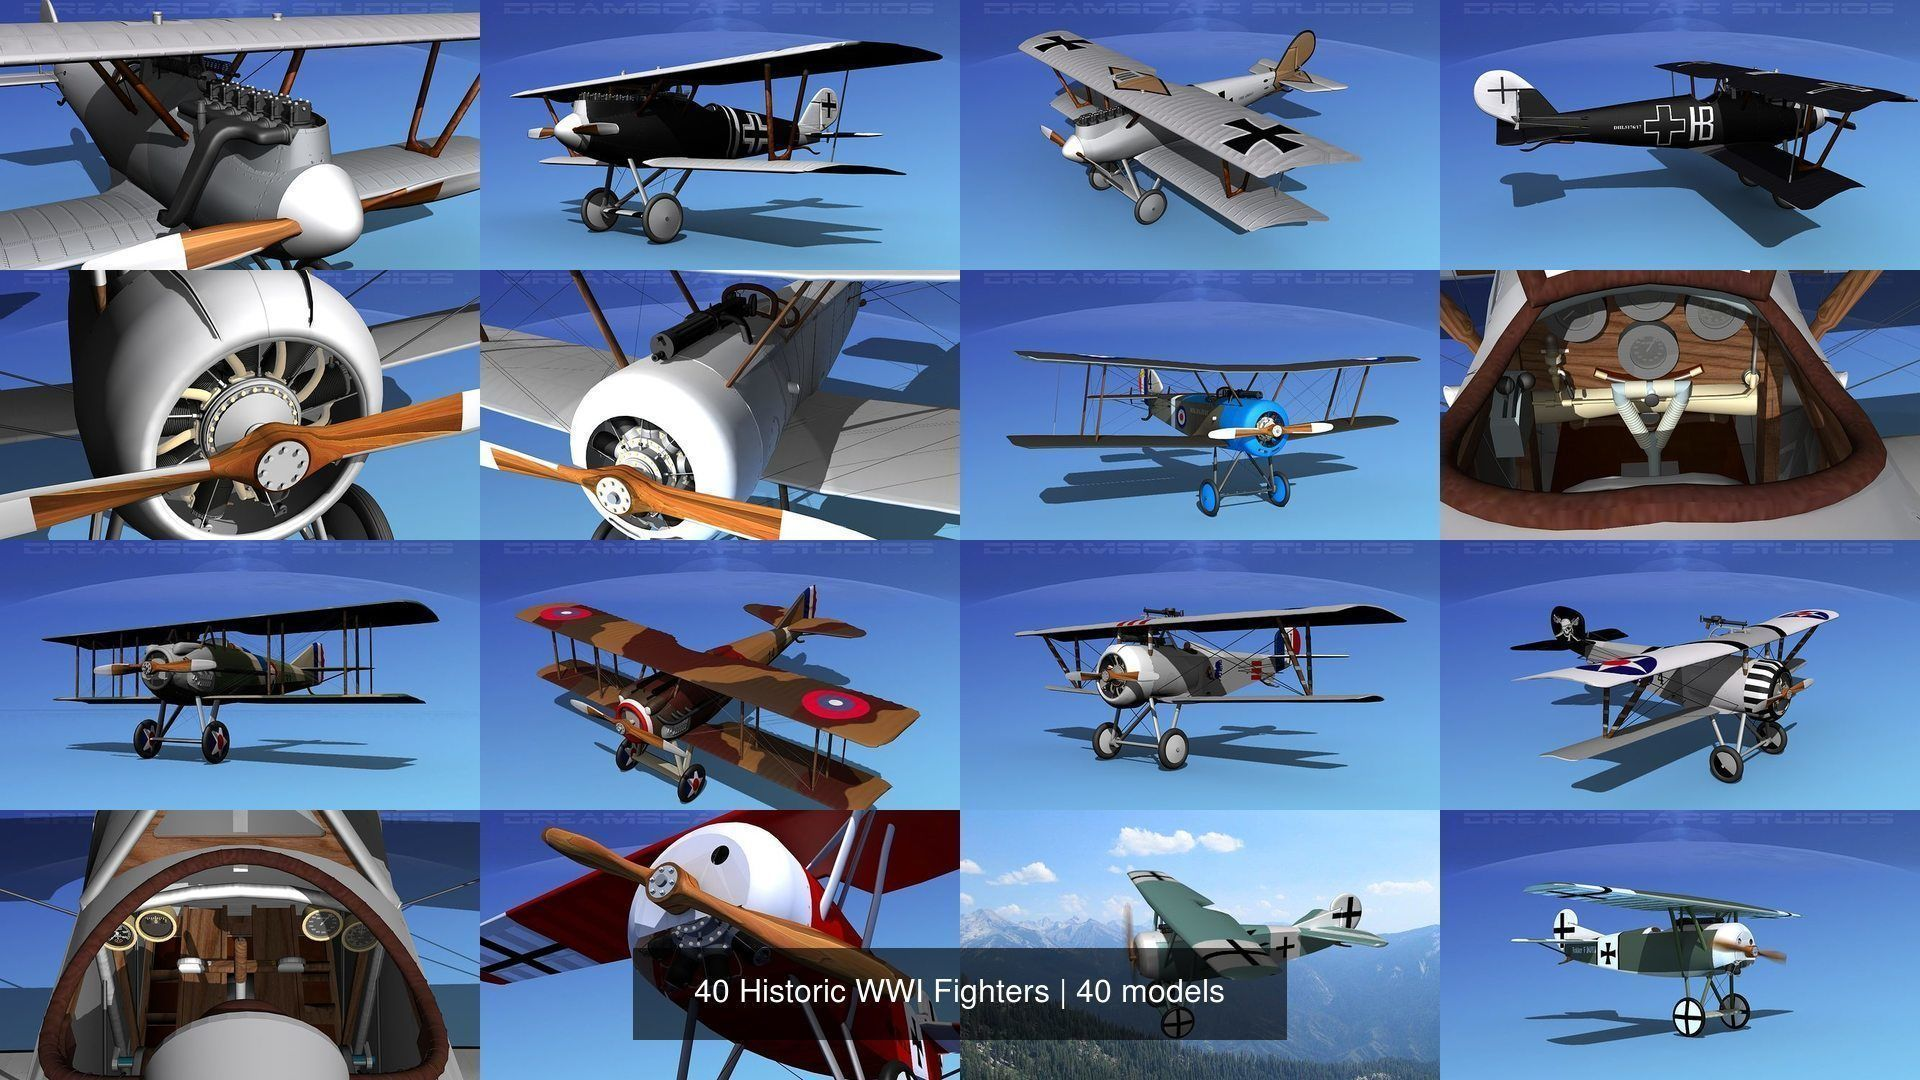 40 Historic WWI Fighters